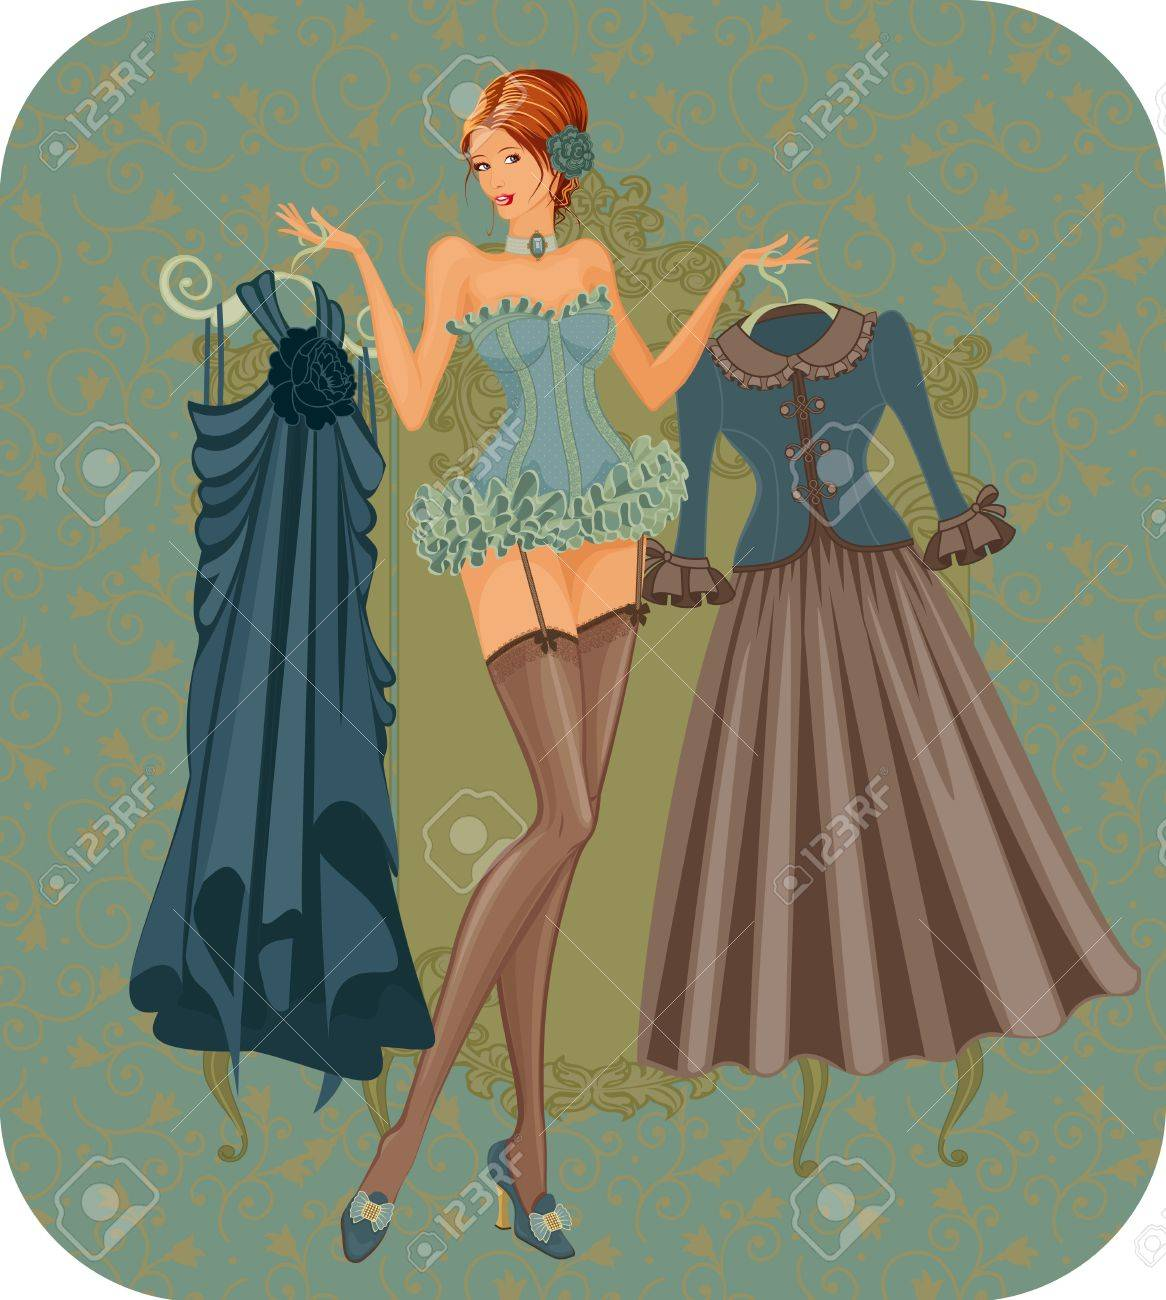 Illustration of a beautiful woman in corset with dresses in vintage style Stock Vector - 10775019